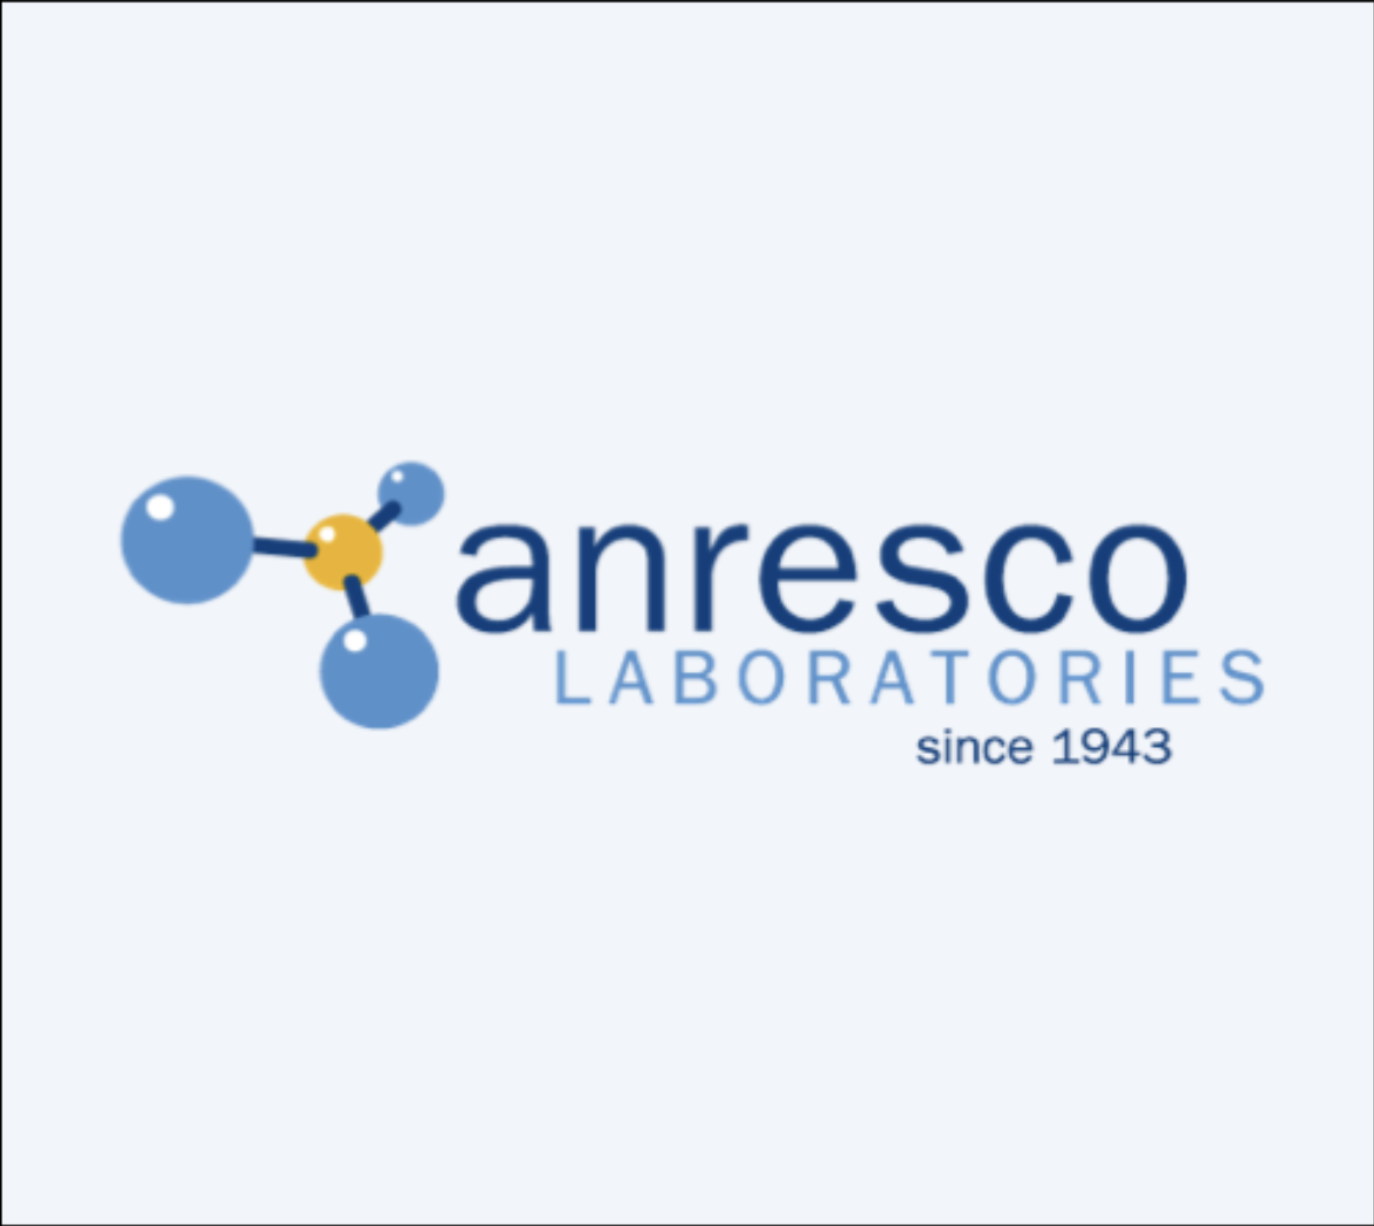 Anresco Laboratories logo